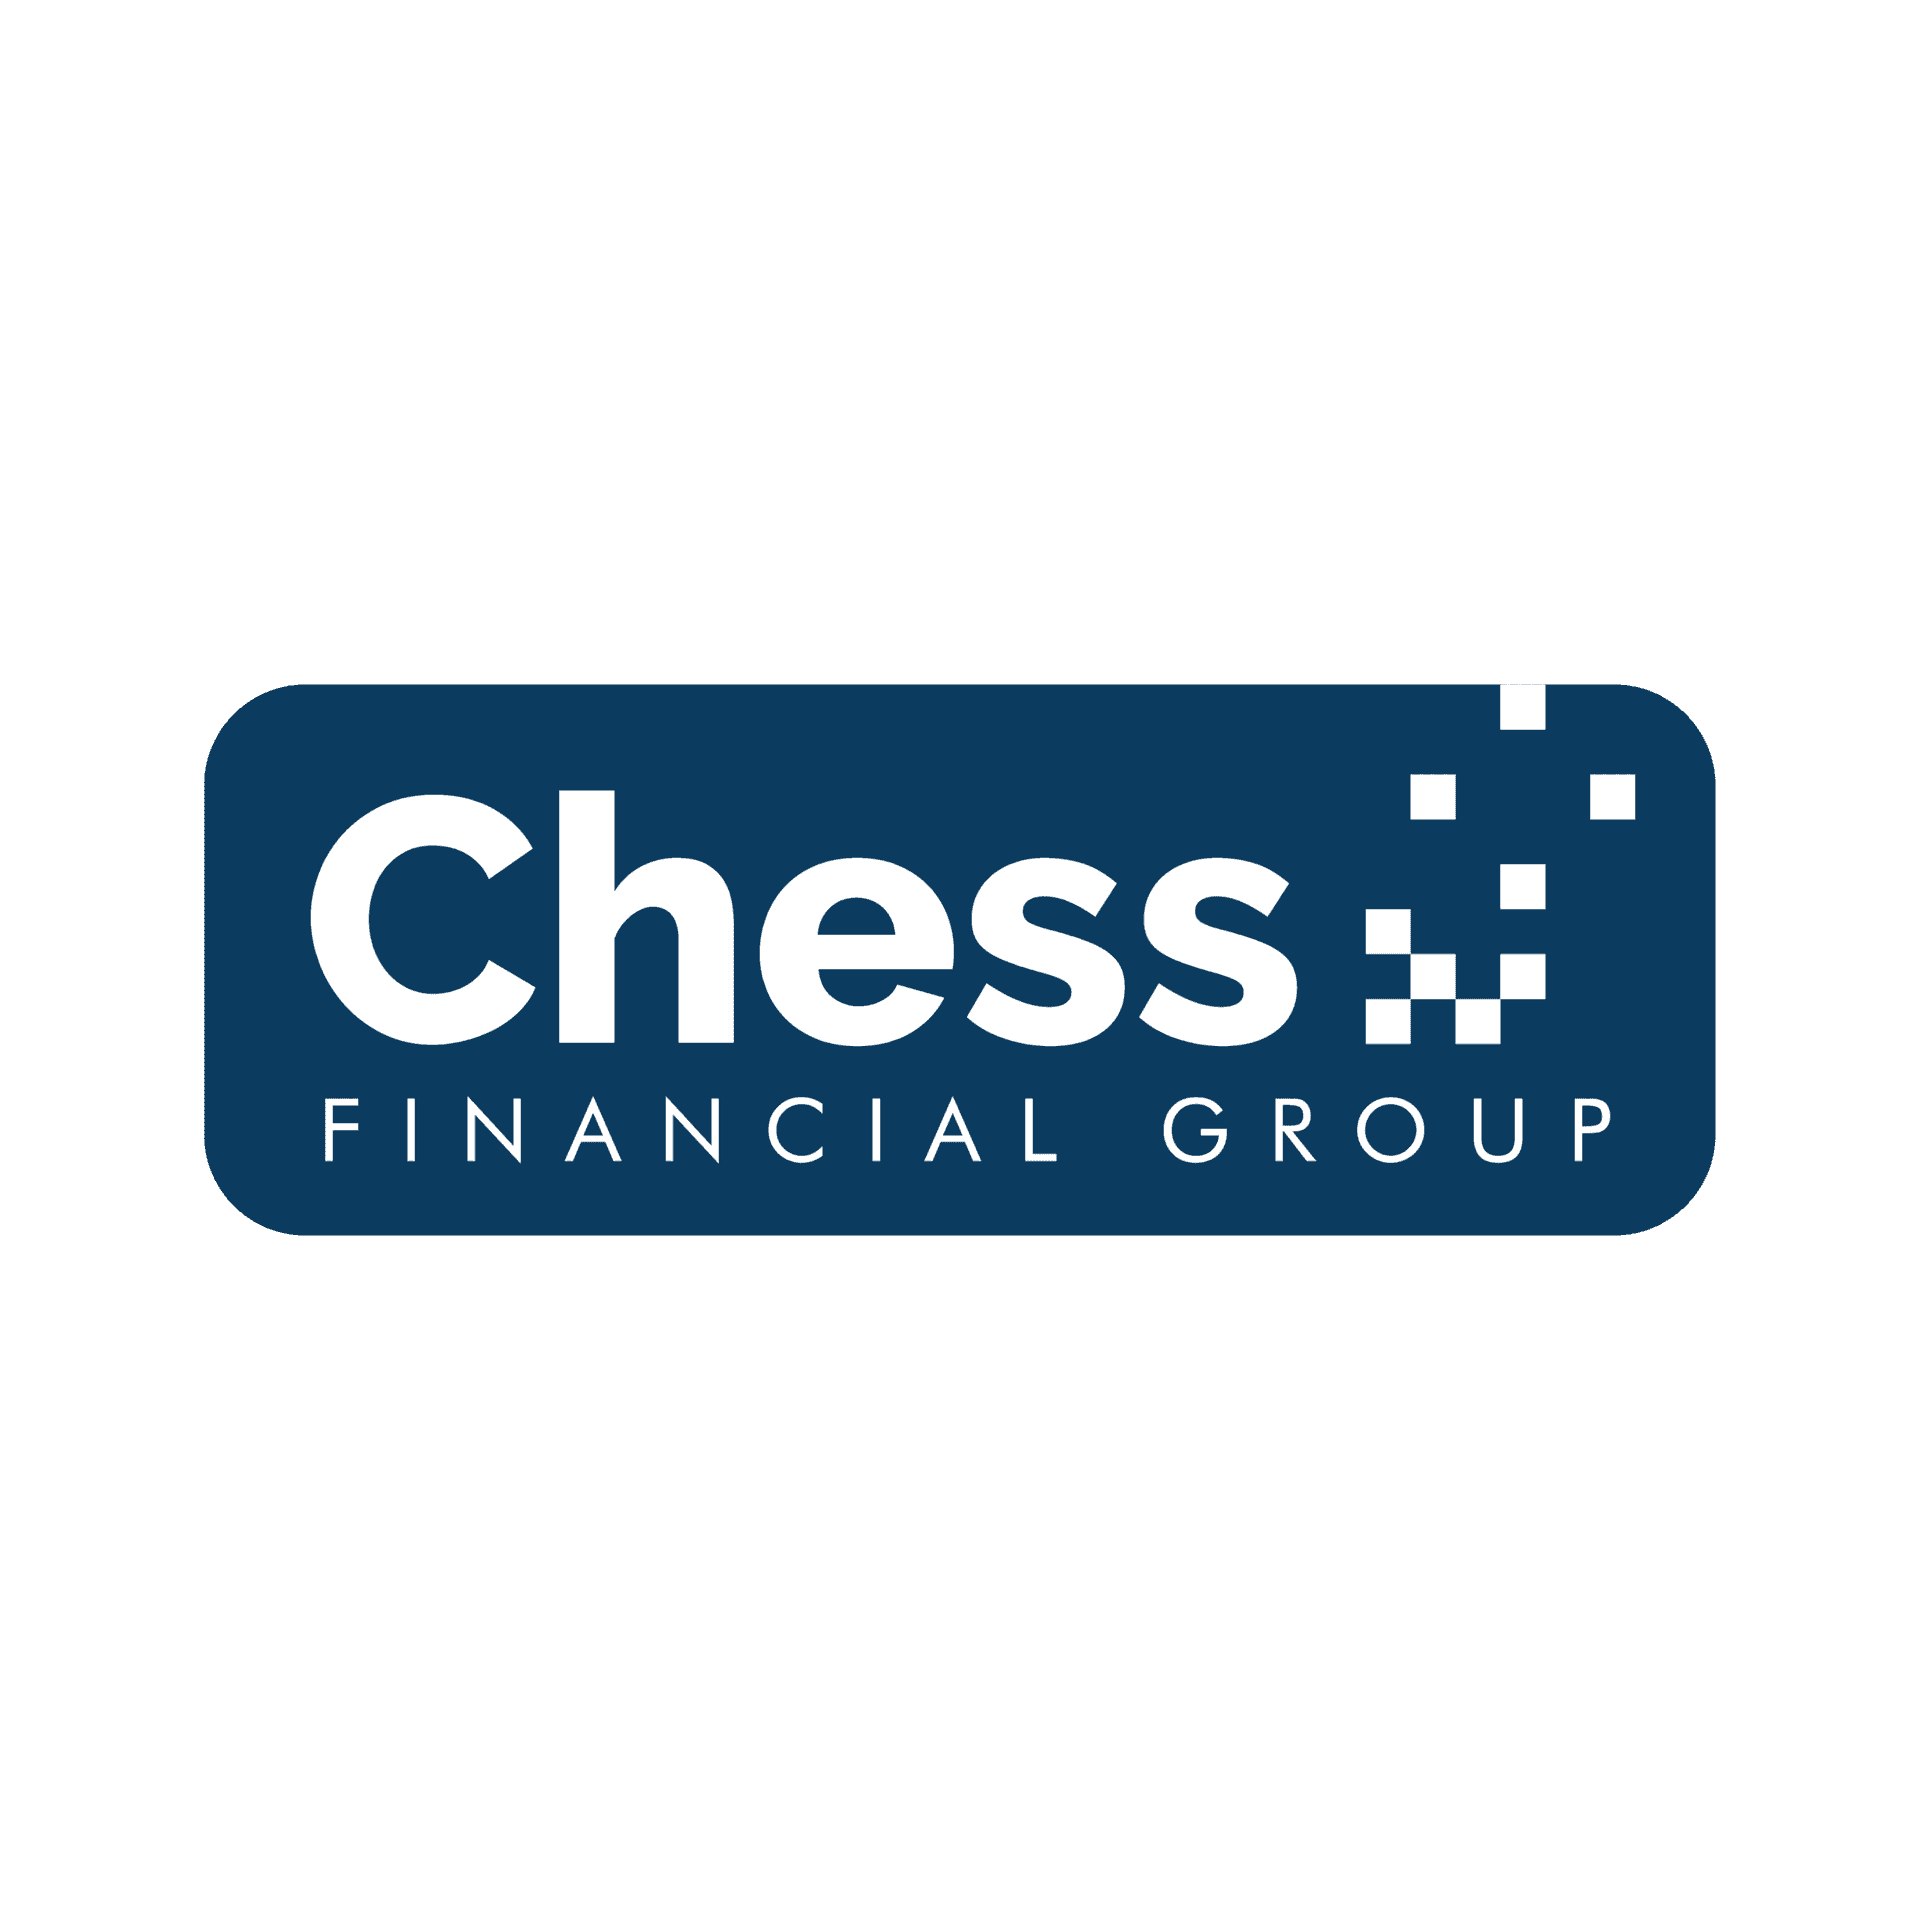 Chess Financial Group